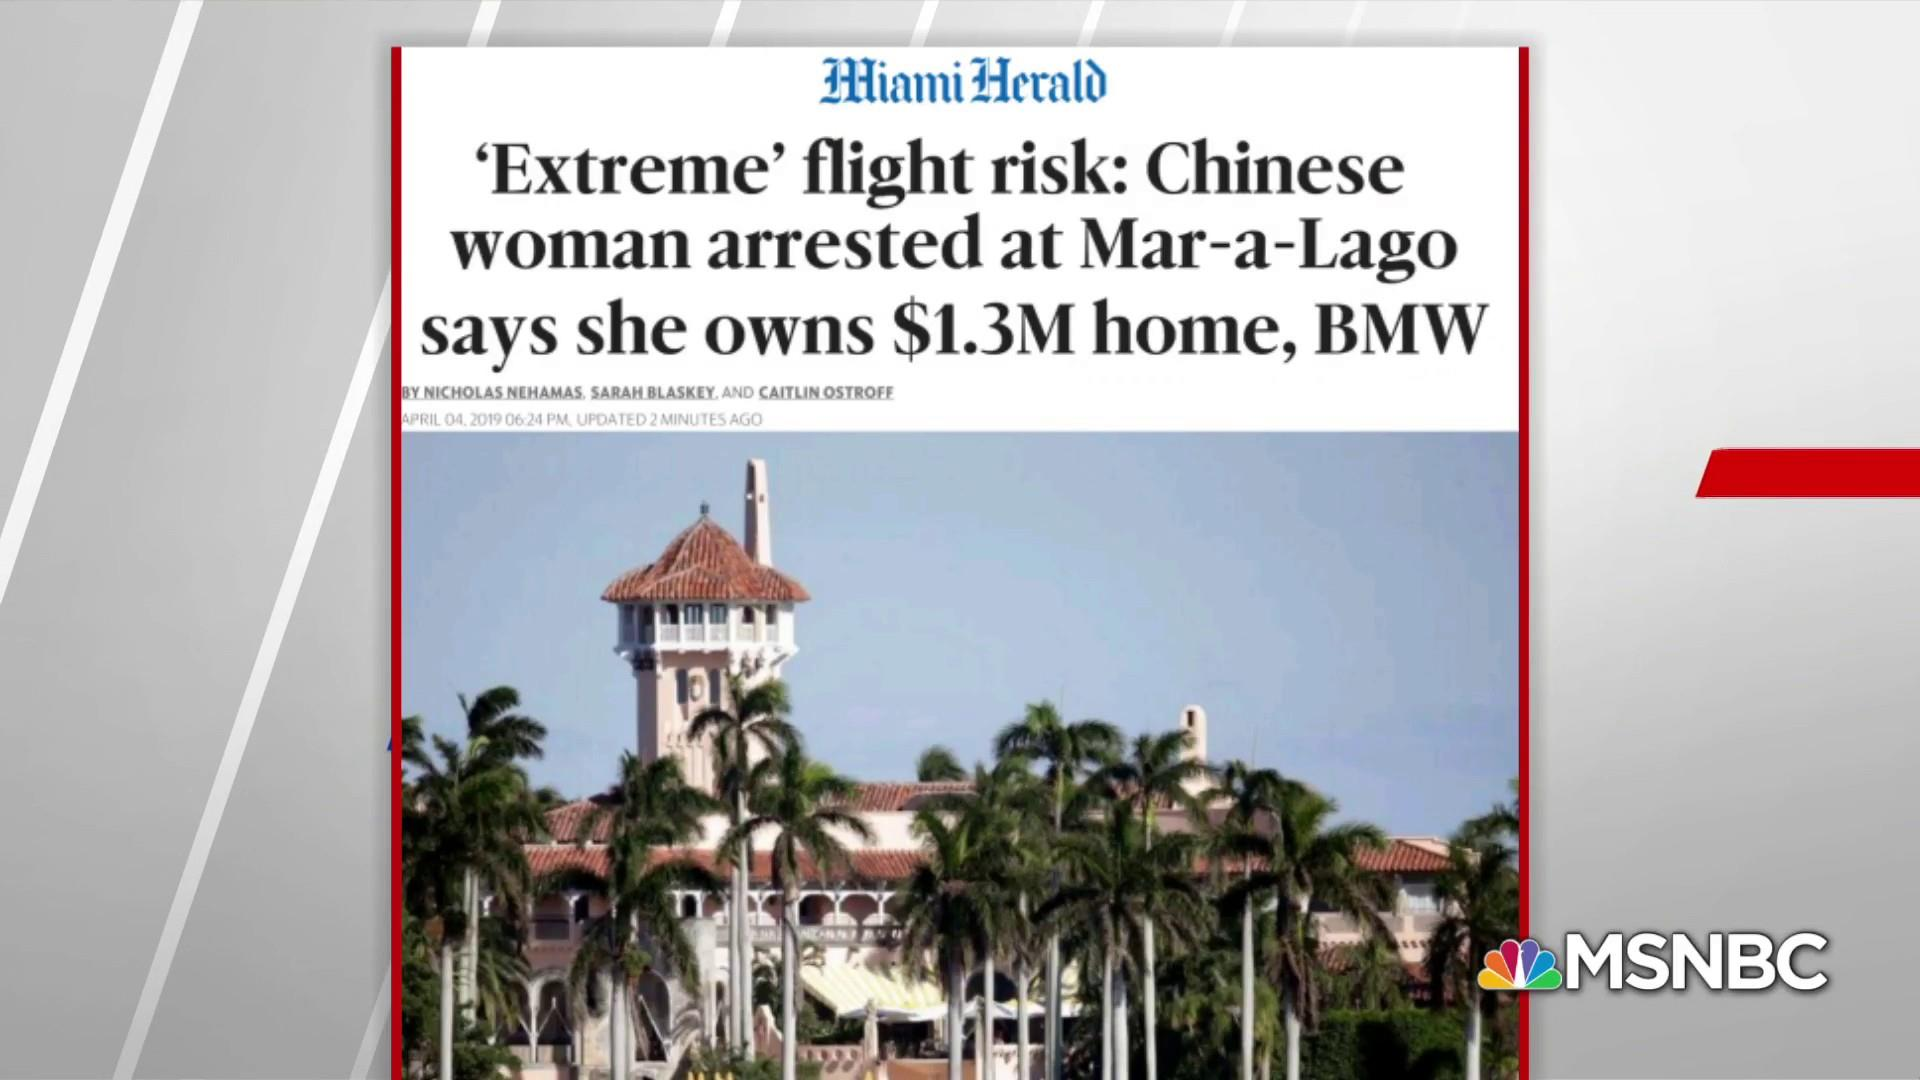 Miami Herald: Chinese national arrested at Mar-a-Lago posed 'extreme' flight risk